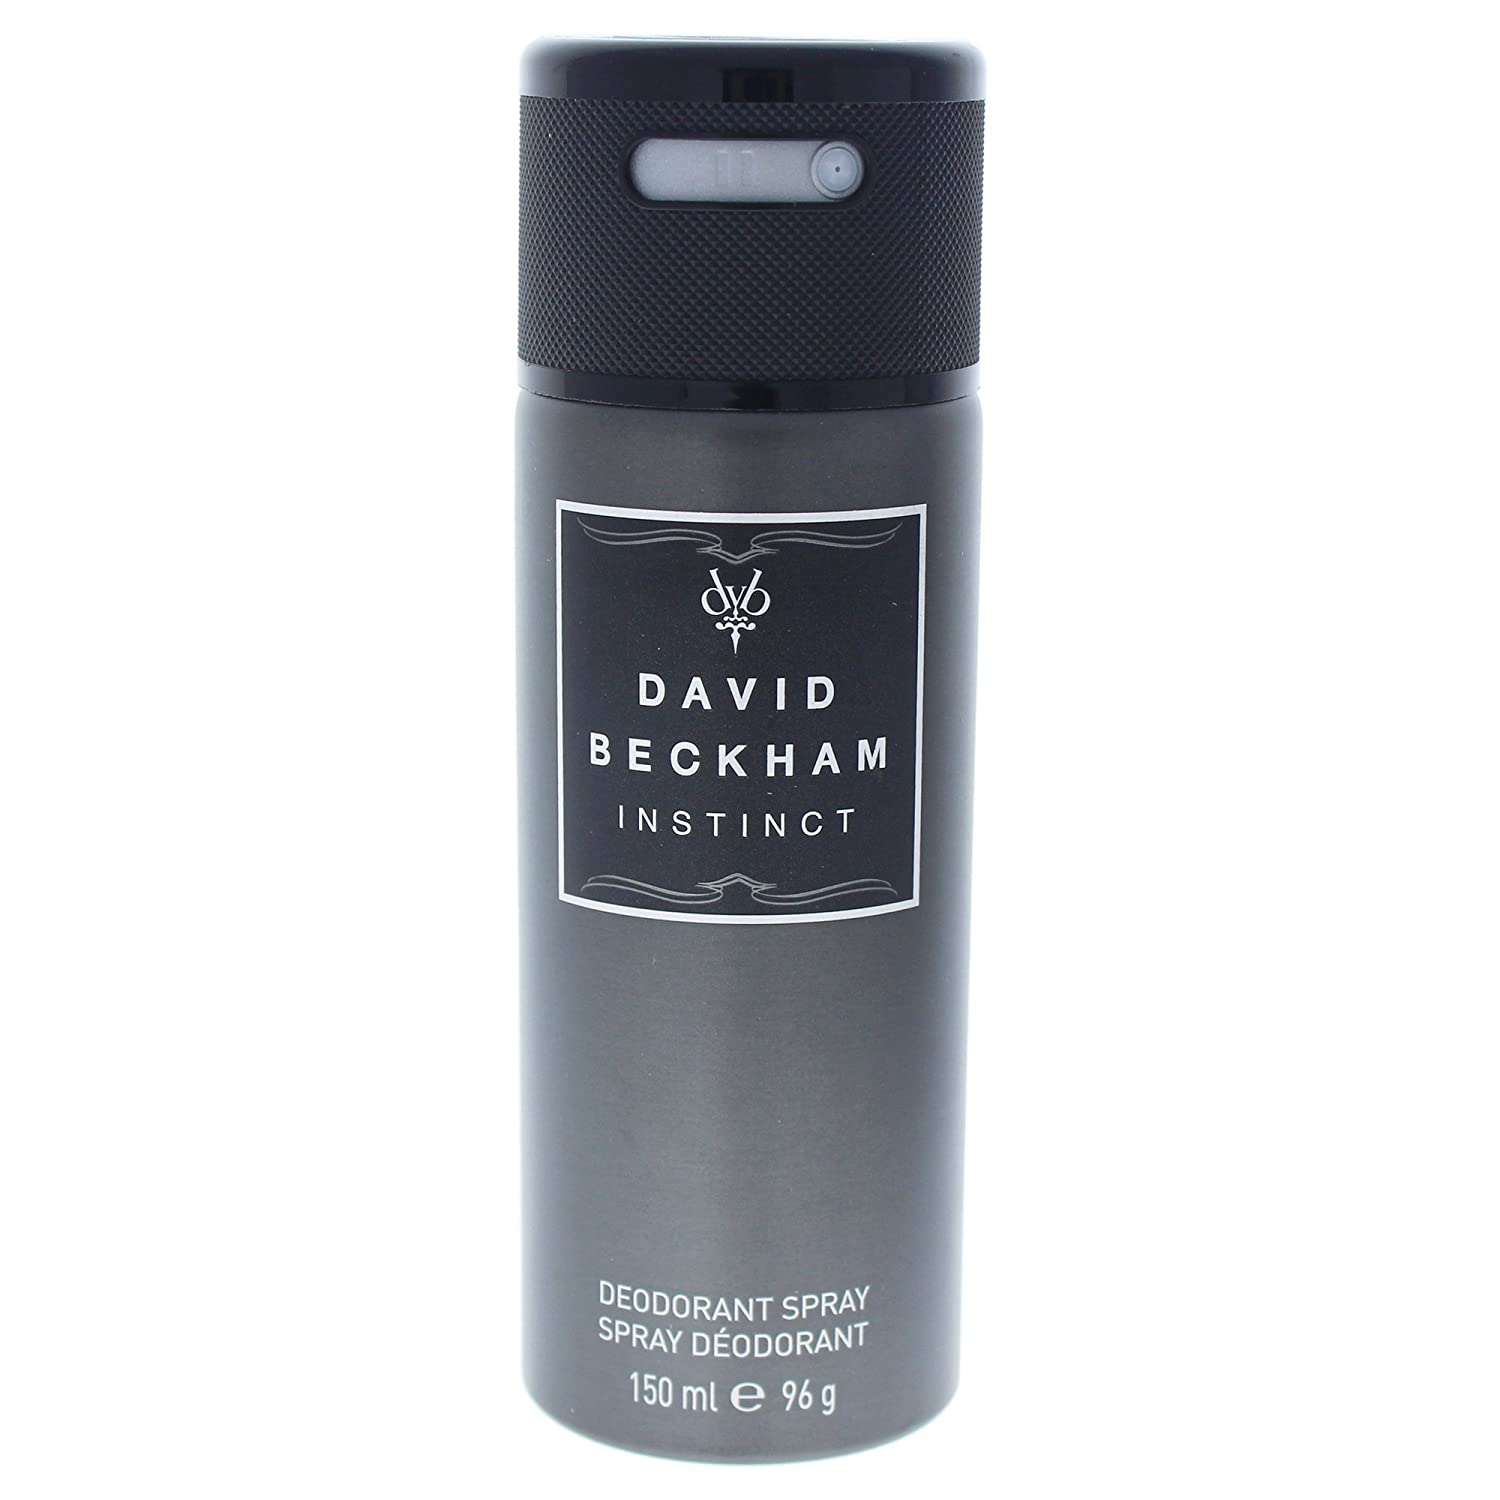 David Beckham, Instinct, Deodorant Body Spray, 150 ml Coty 105584727